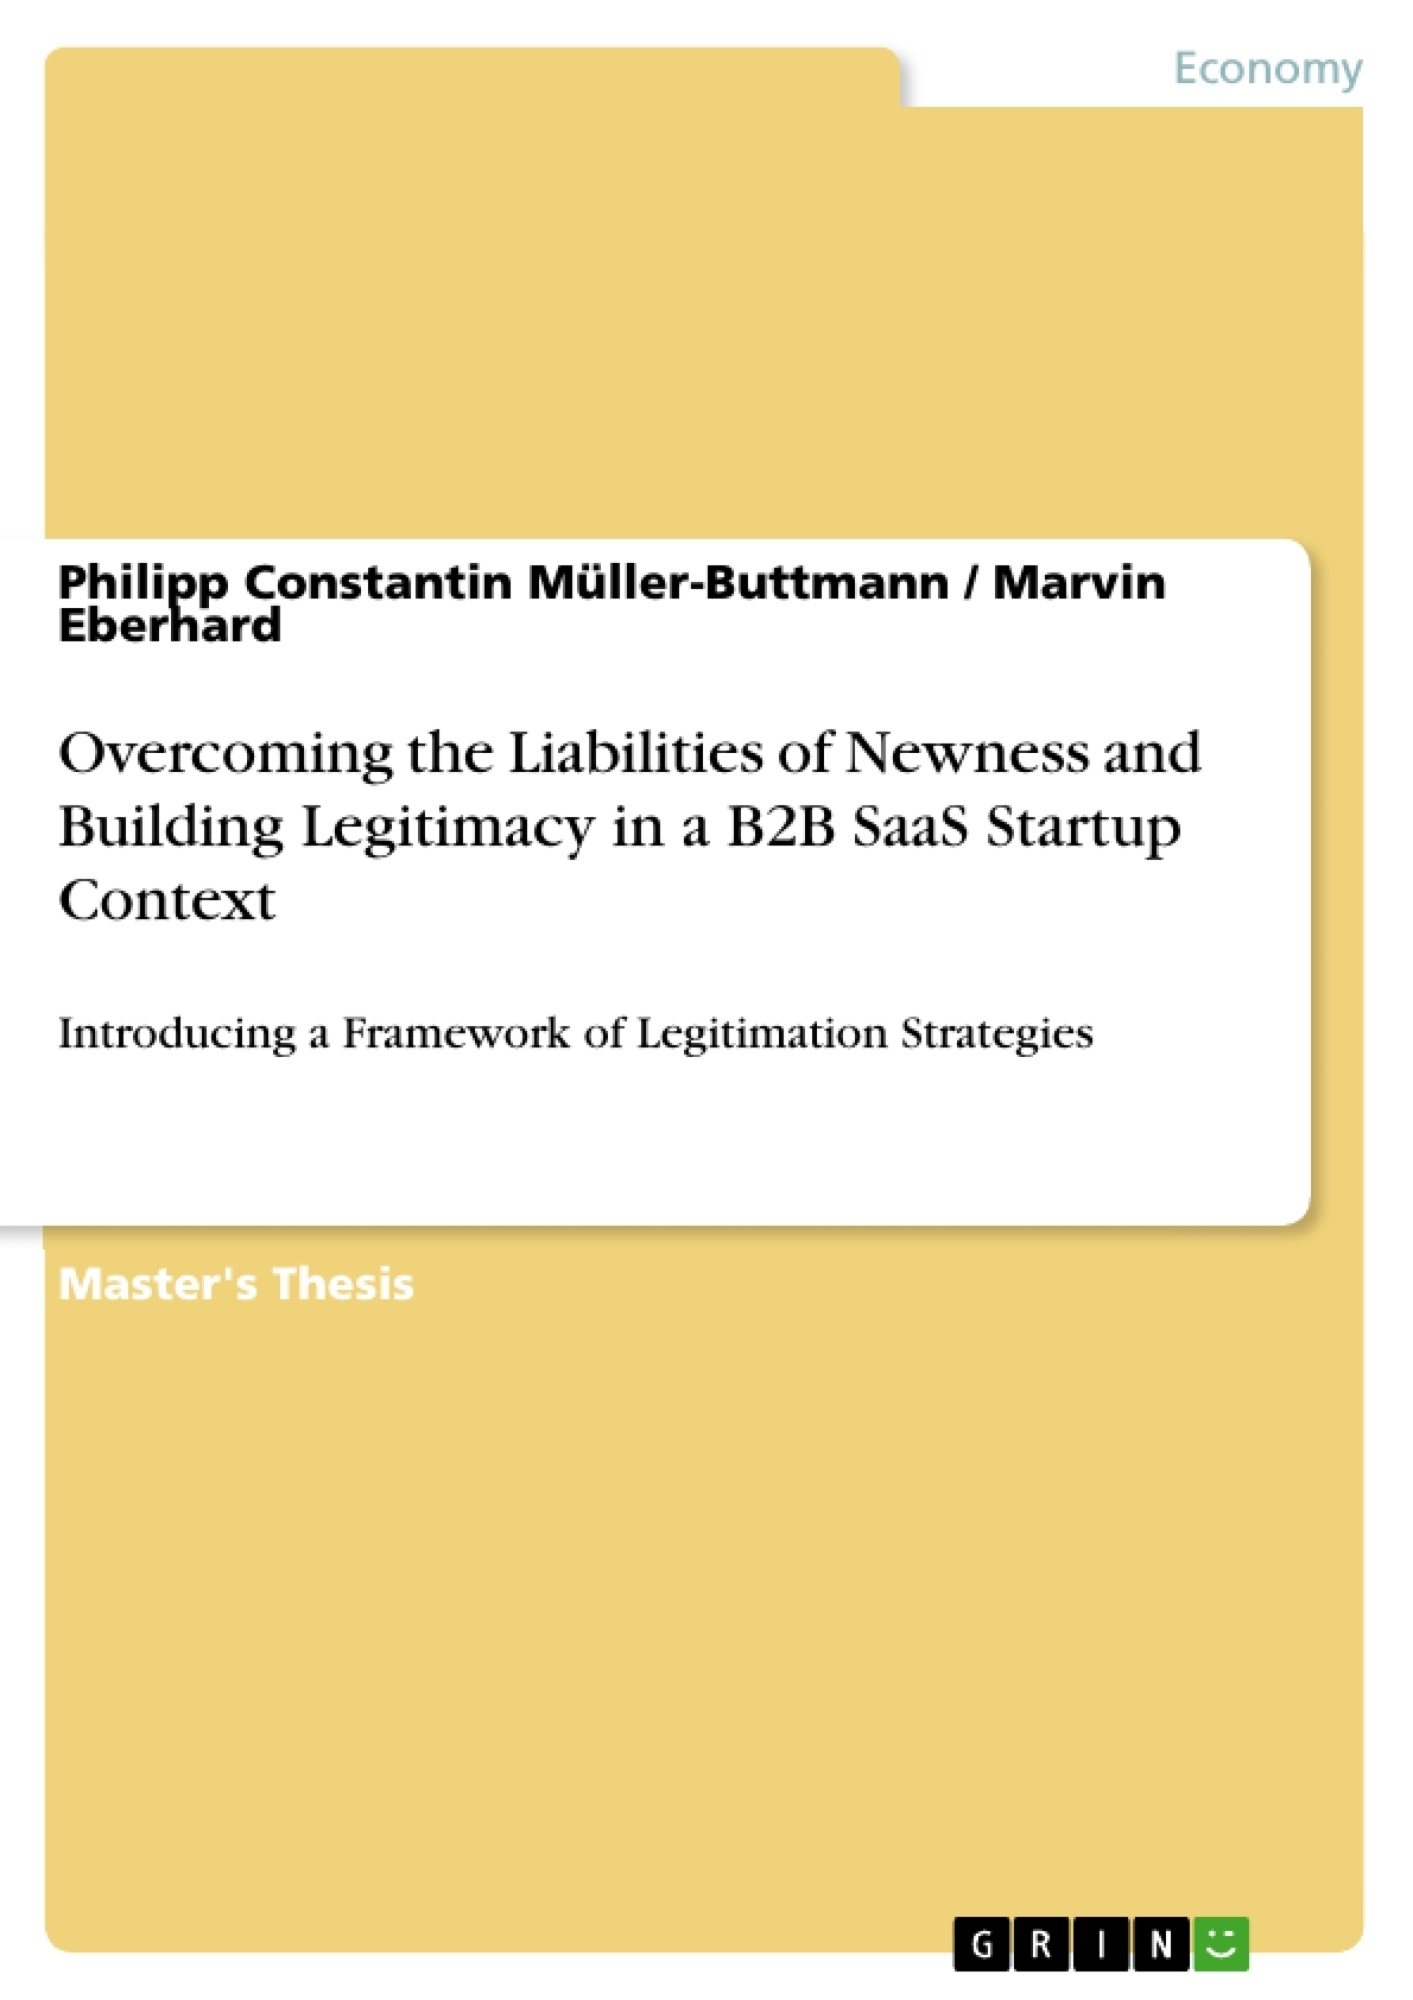 Title: Overcoming the Liabilities of Newness and Building Legitimacy in a B2B SaaS Startup Context